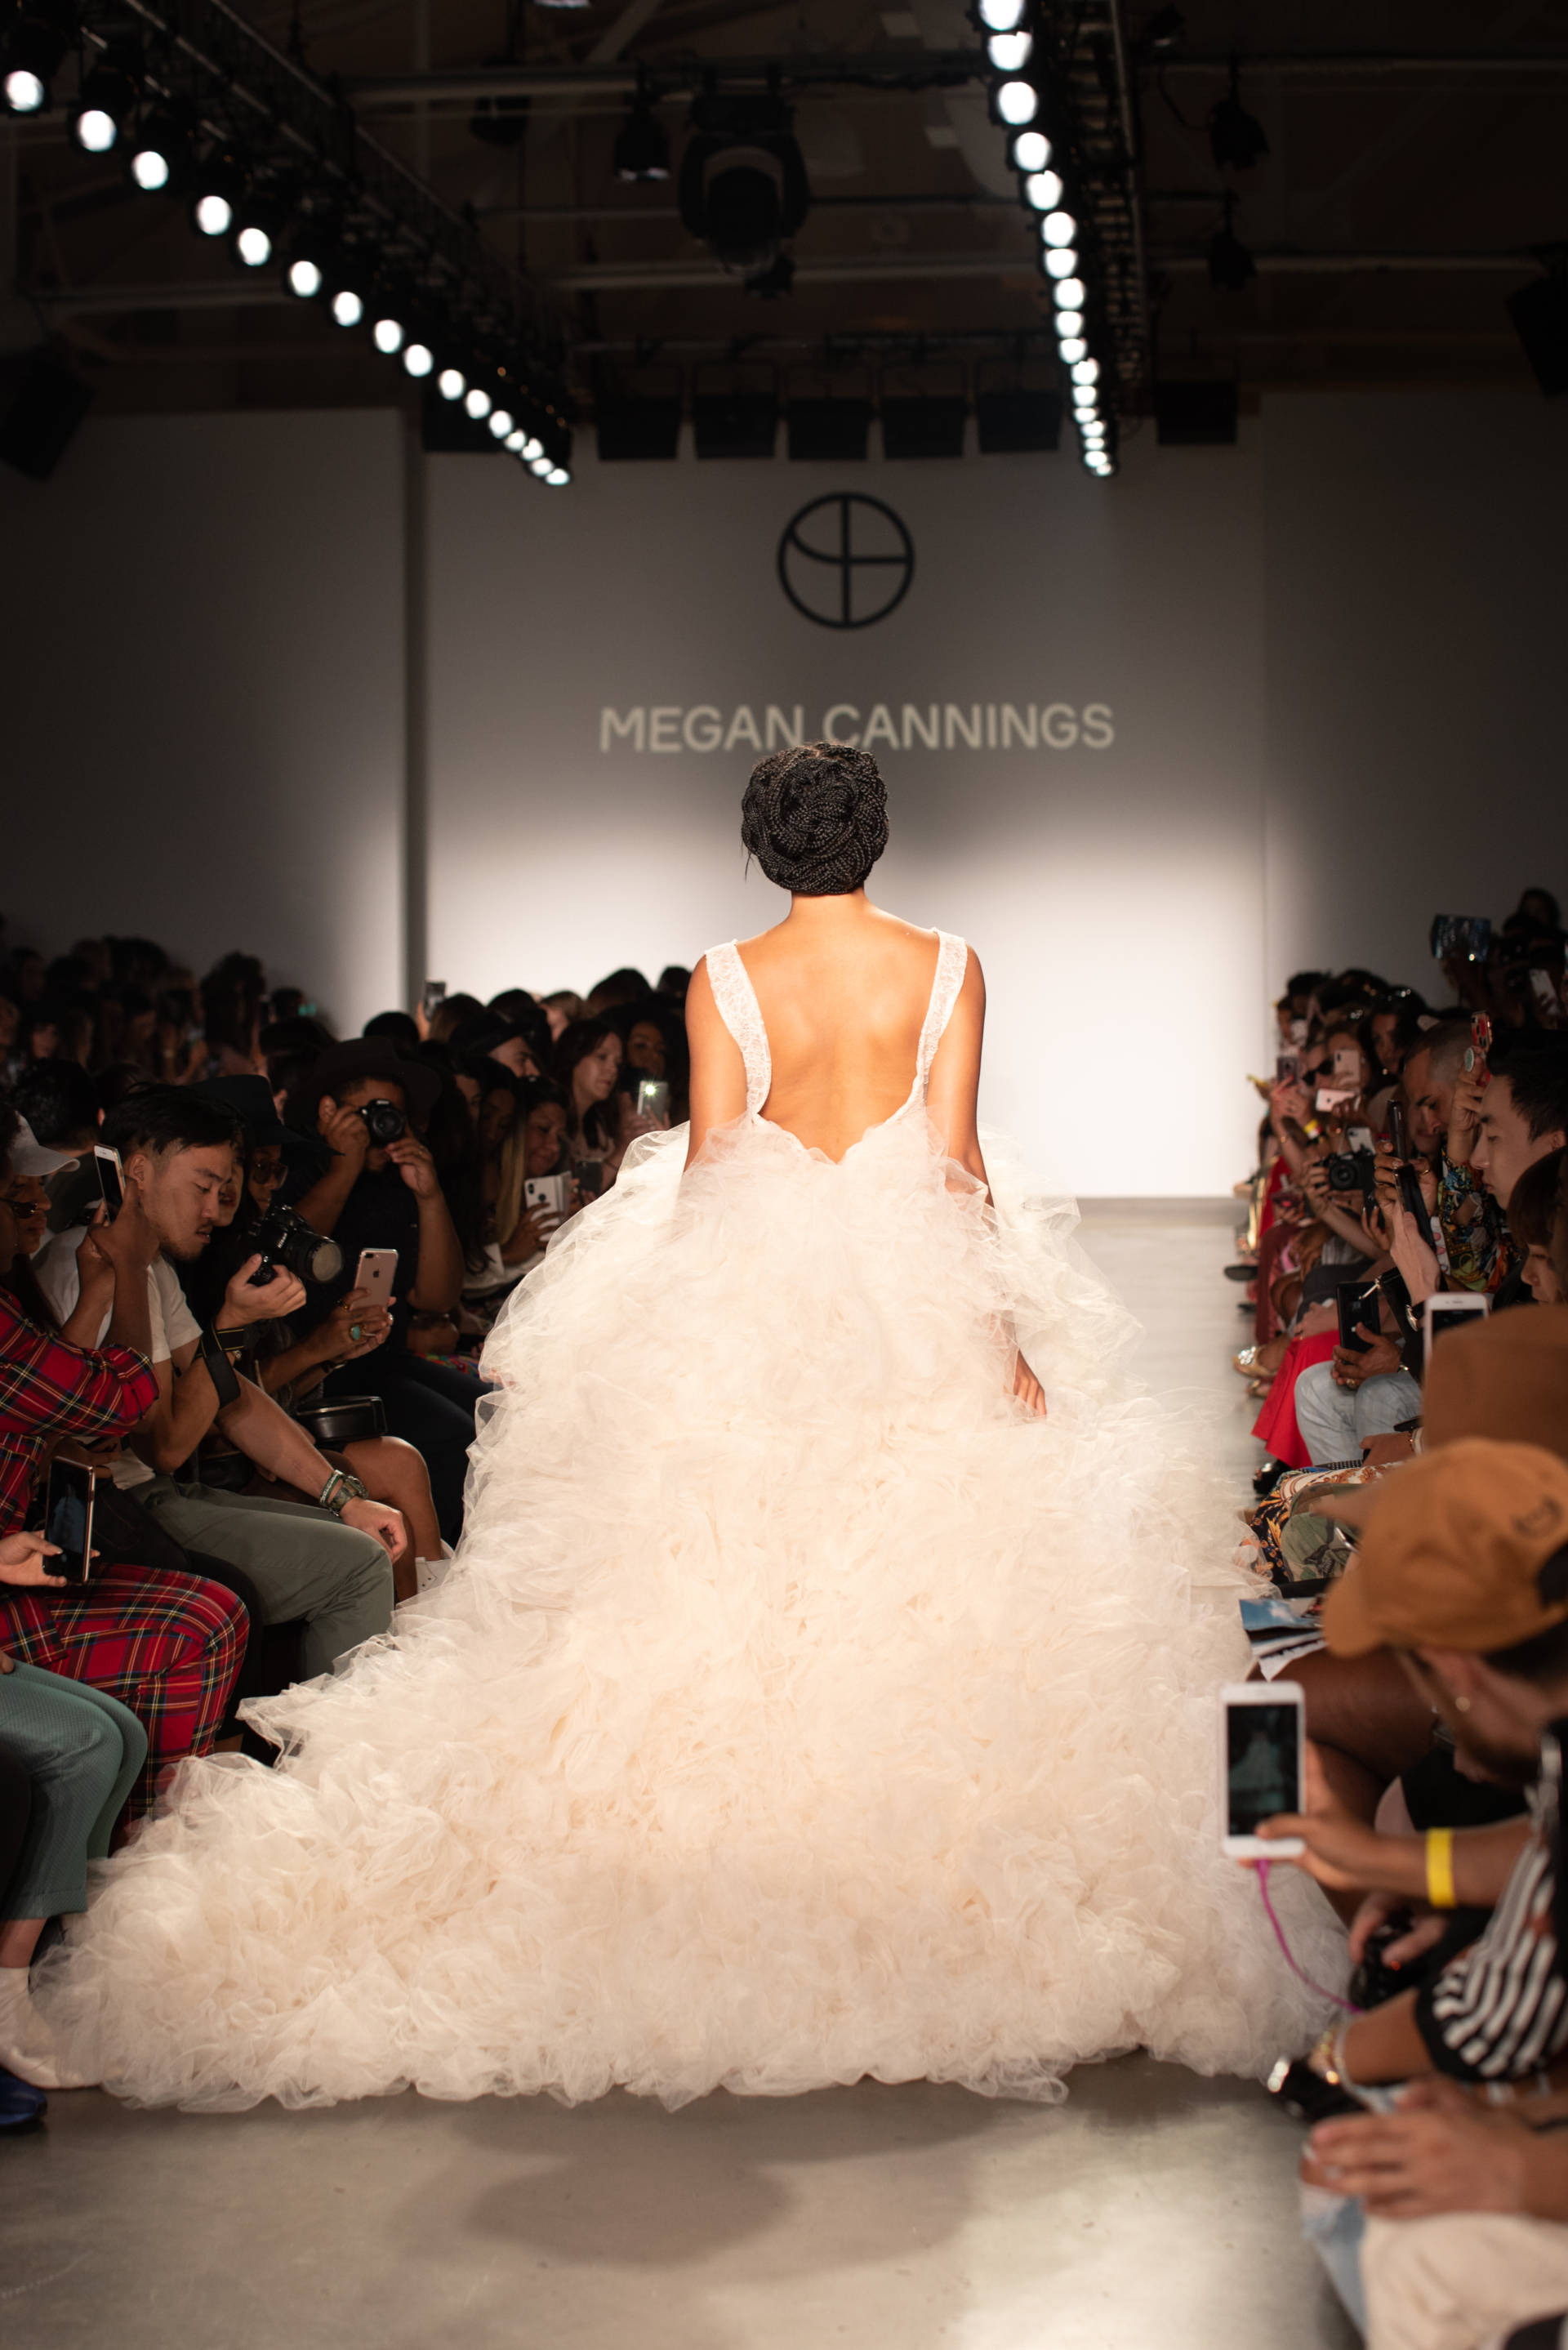 It has been a dream of mine to attend NYFW. Everything from the shows, to the meetings, parties and events- it has all exceeded my expectations. As a creative I think it is important to surround yourself with inspiration. This is that and more.